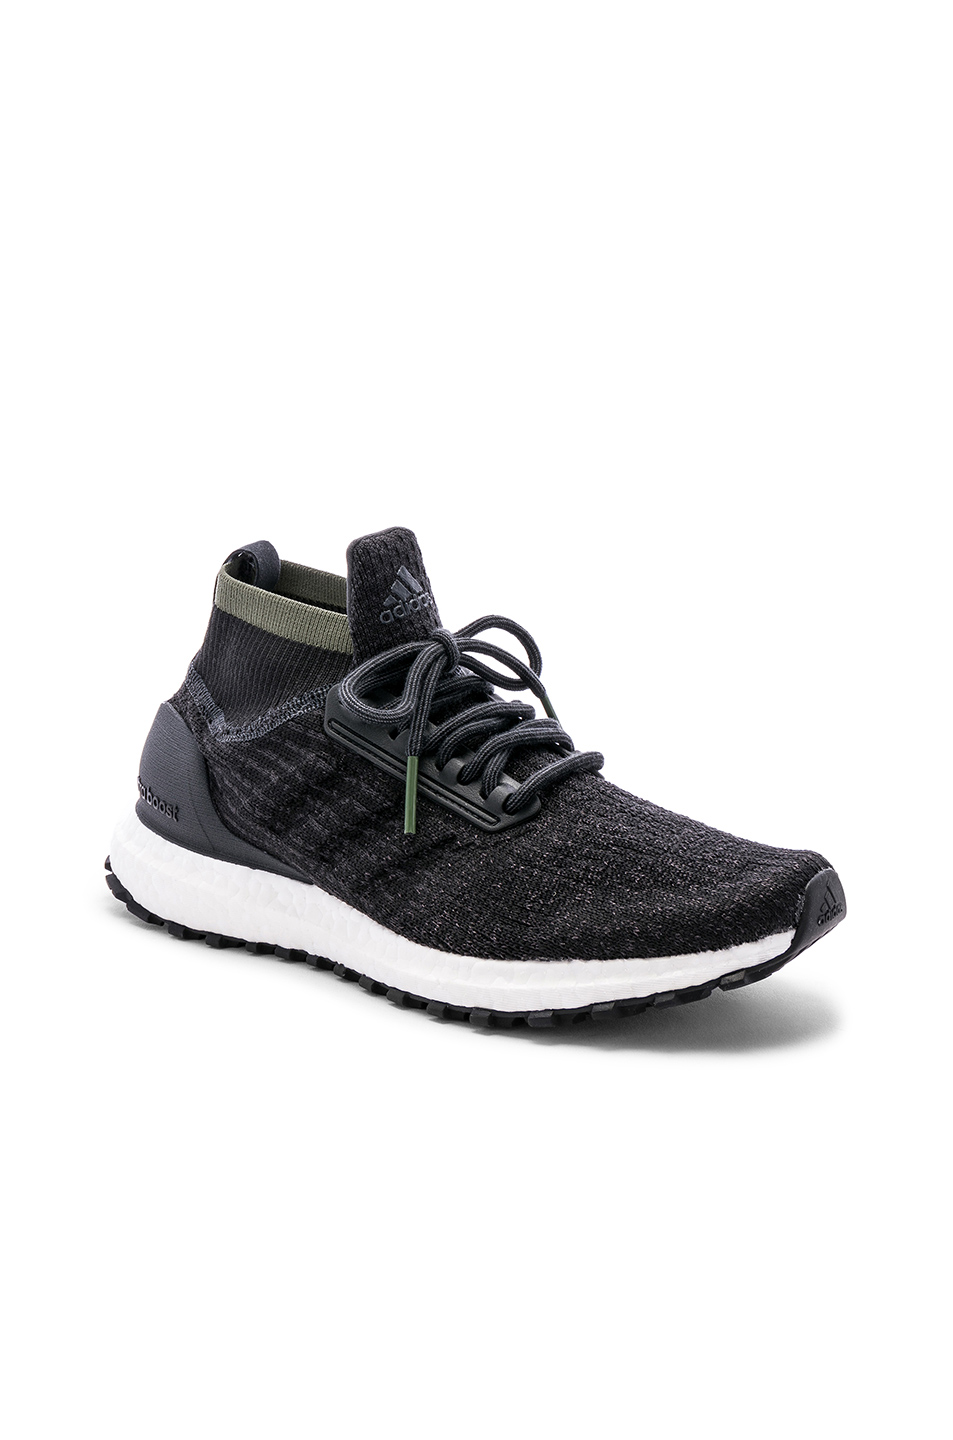 1dceecbe91e adidas Originals UltraBoost All Terrain  adidas Originals UltraBoost All  Terrain ...